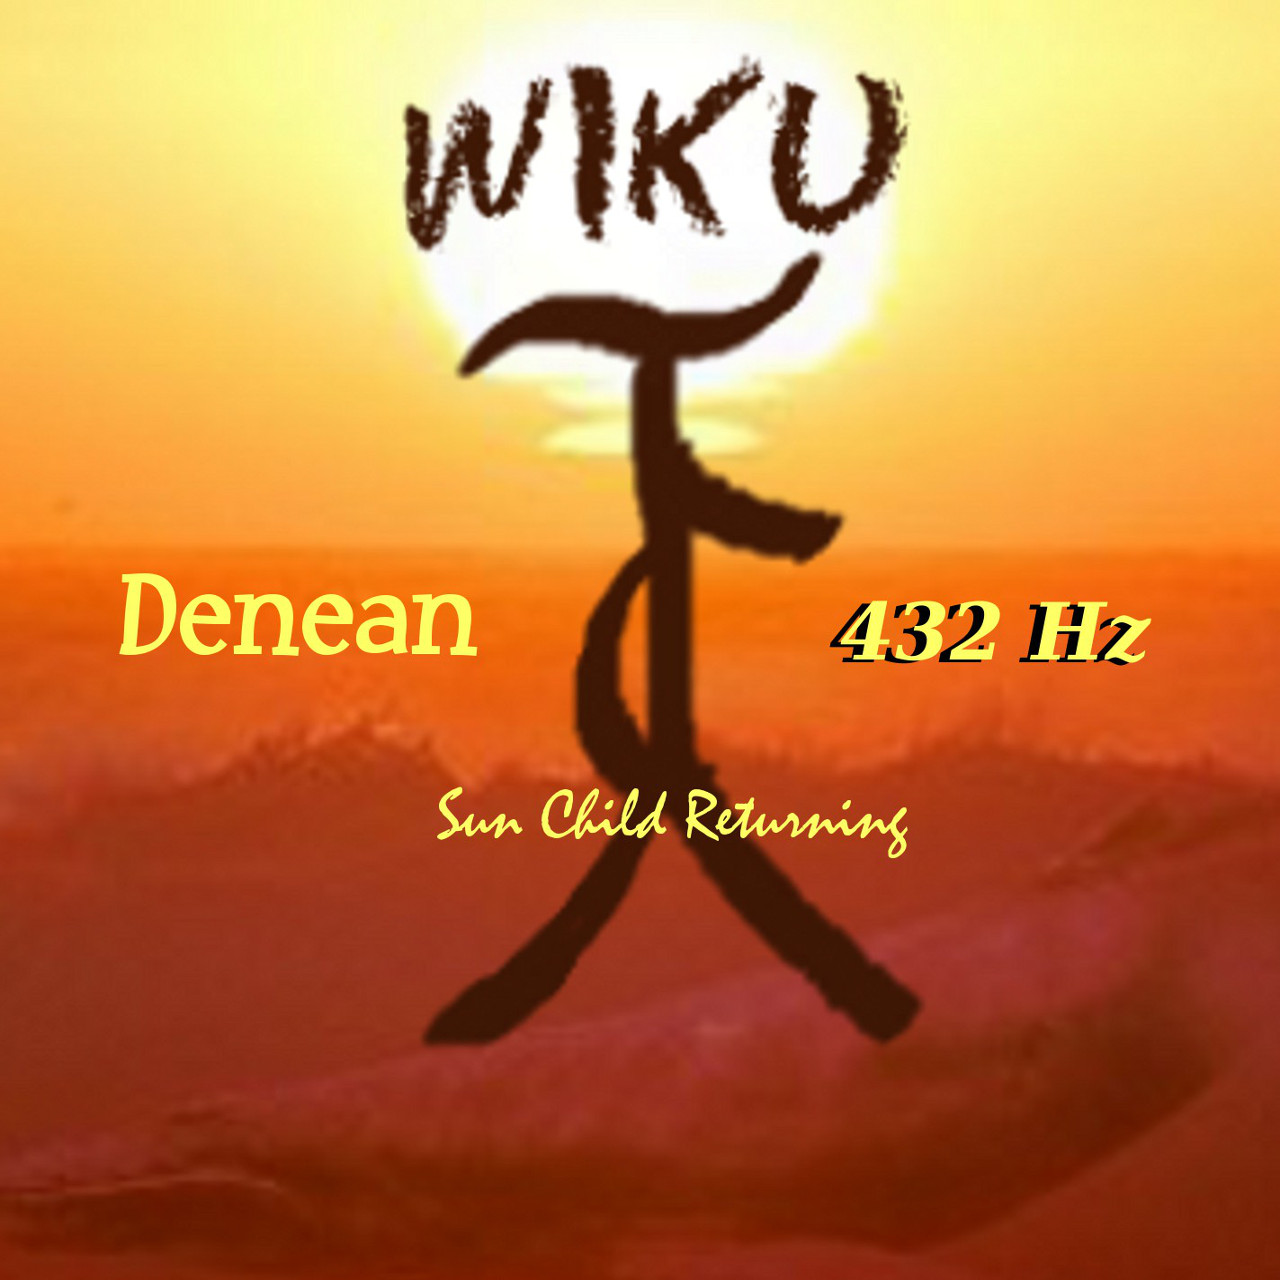 Wiku (Sun Child Returning) - Denean